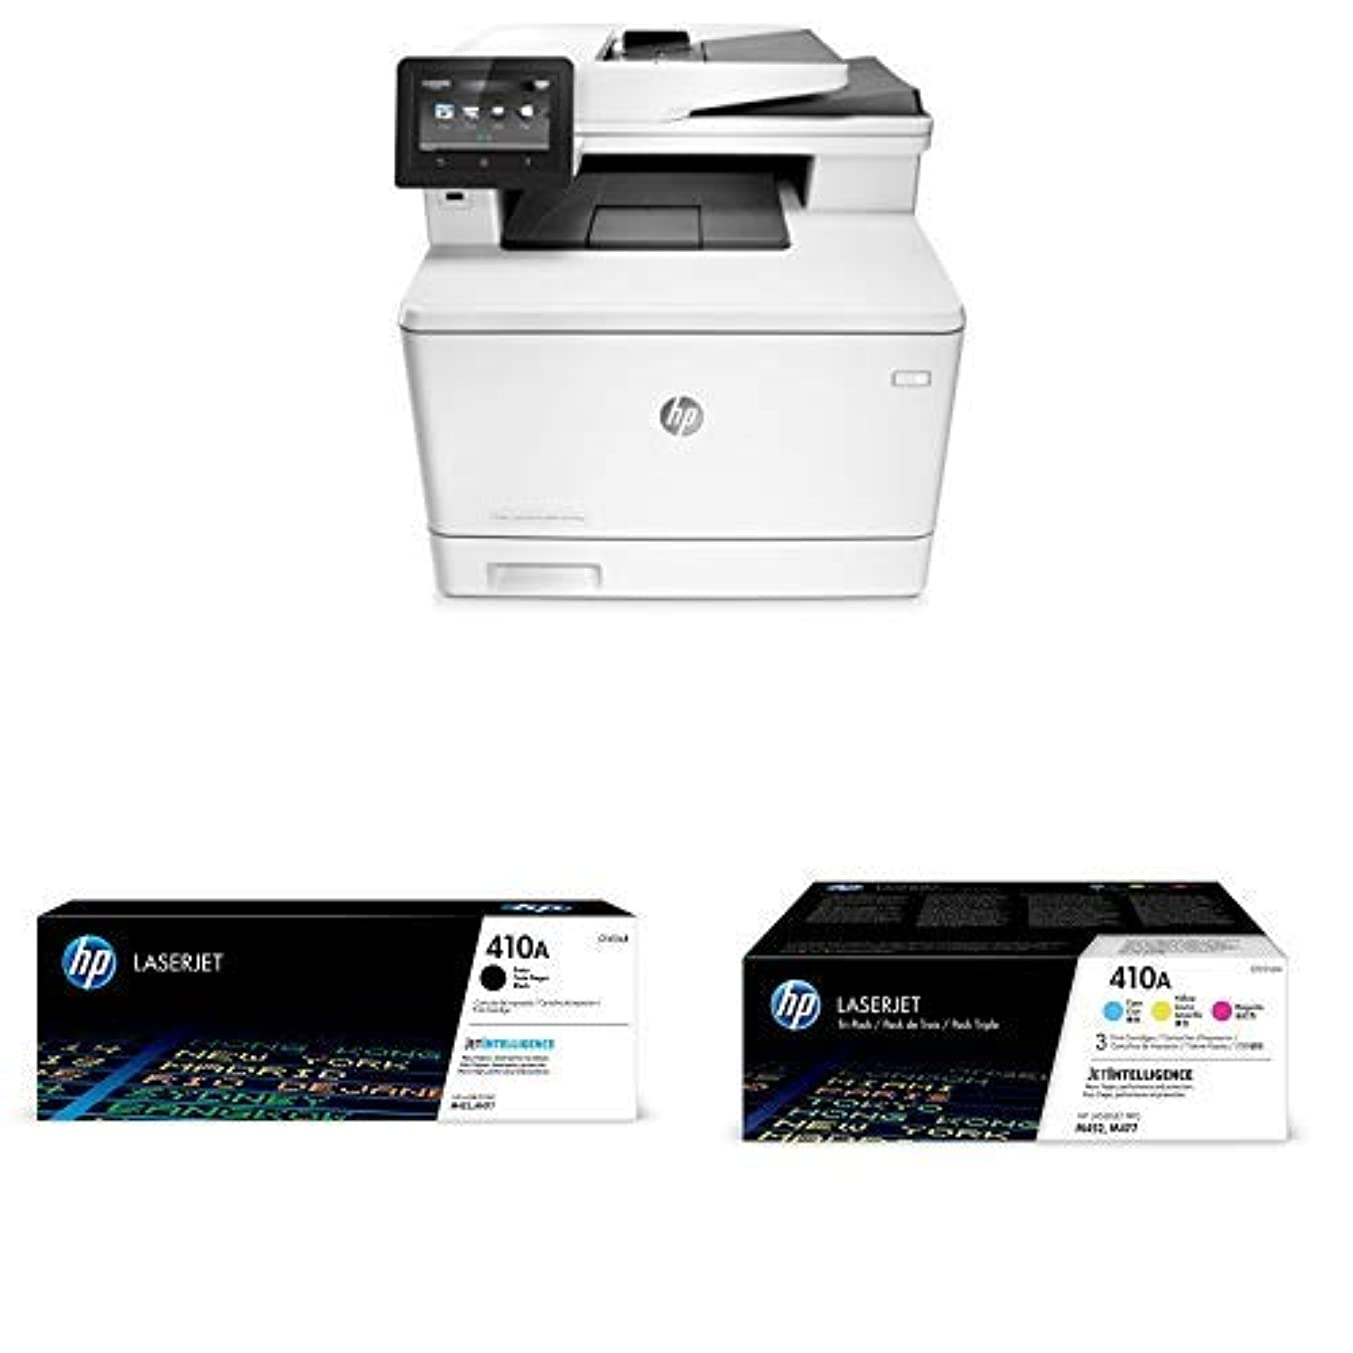 HP LaserJet Pro M477fnw Multifunction Wireless Color Laser Printer with Built-in Ethernet (CF377A) with Standard Yield 4 Color Toner Cartridges